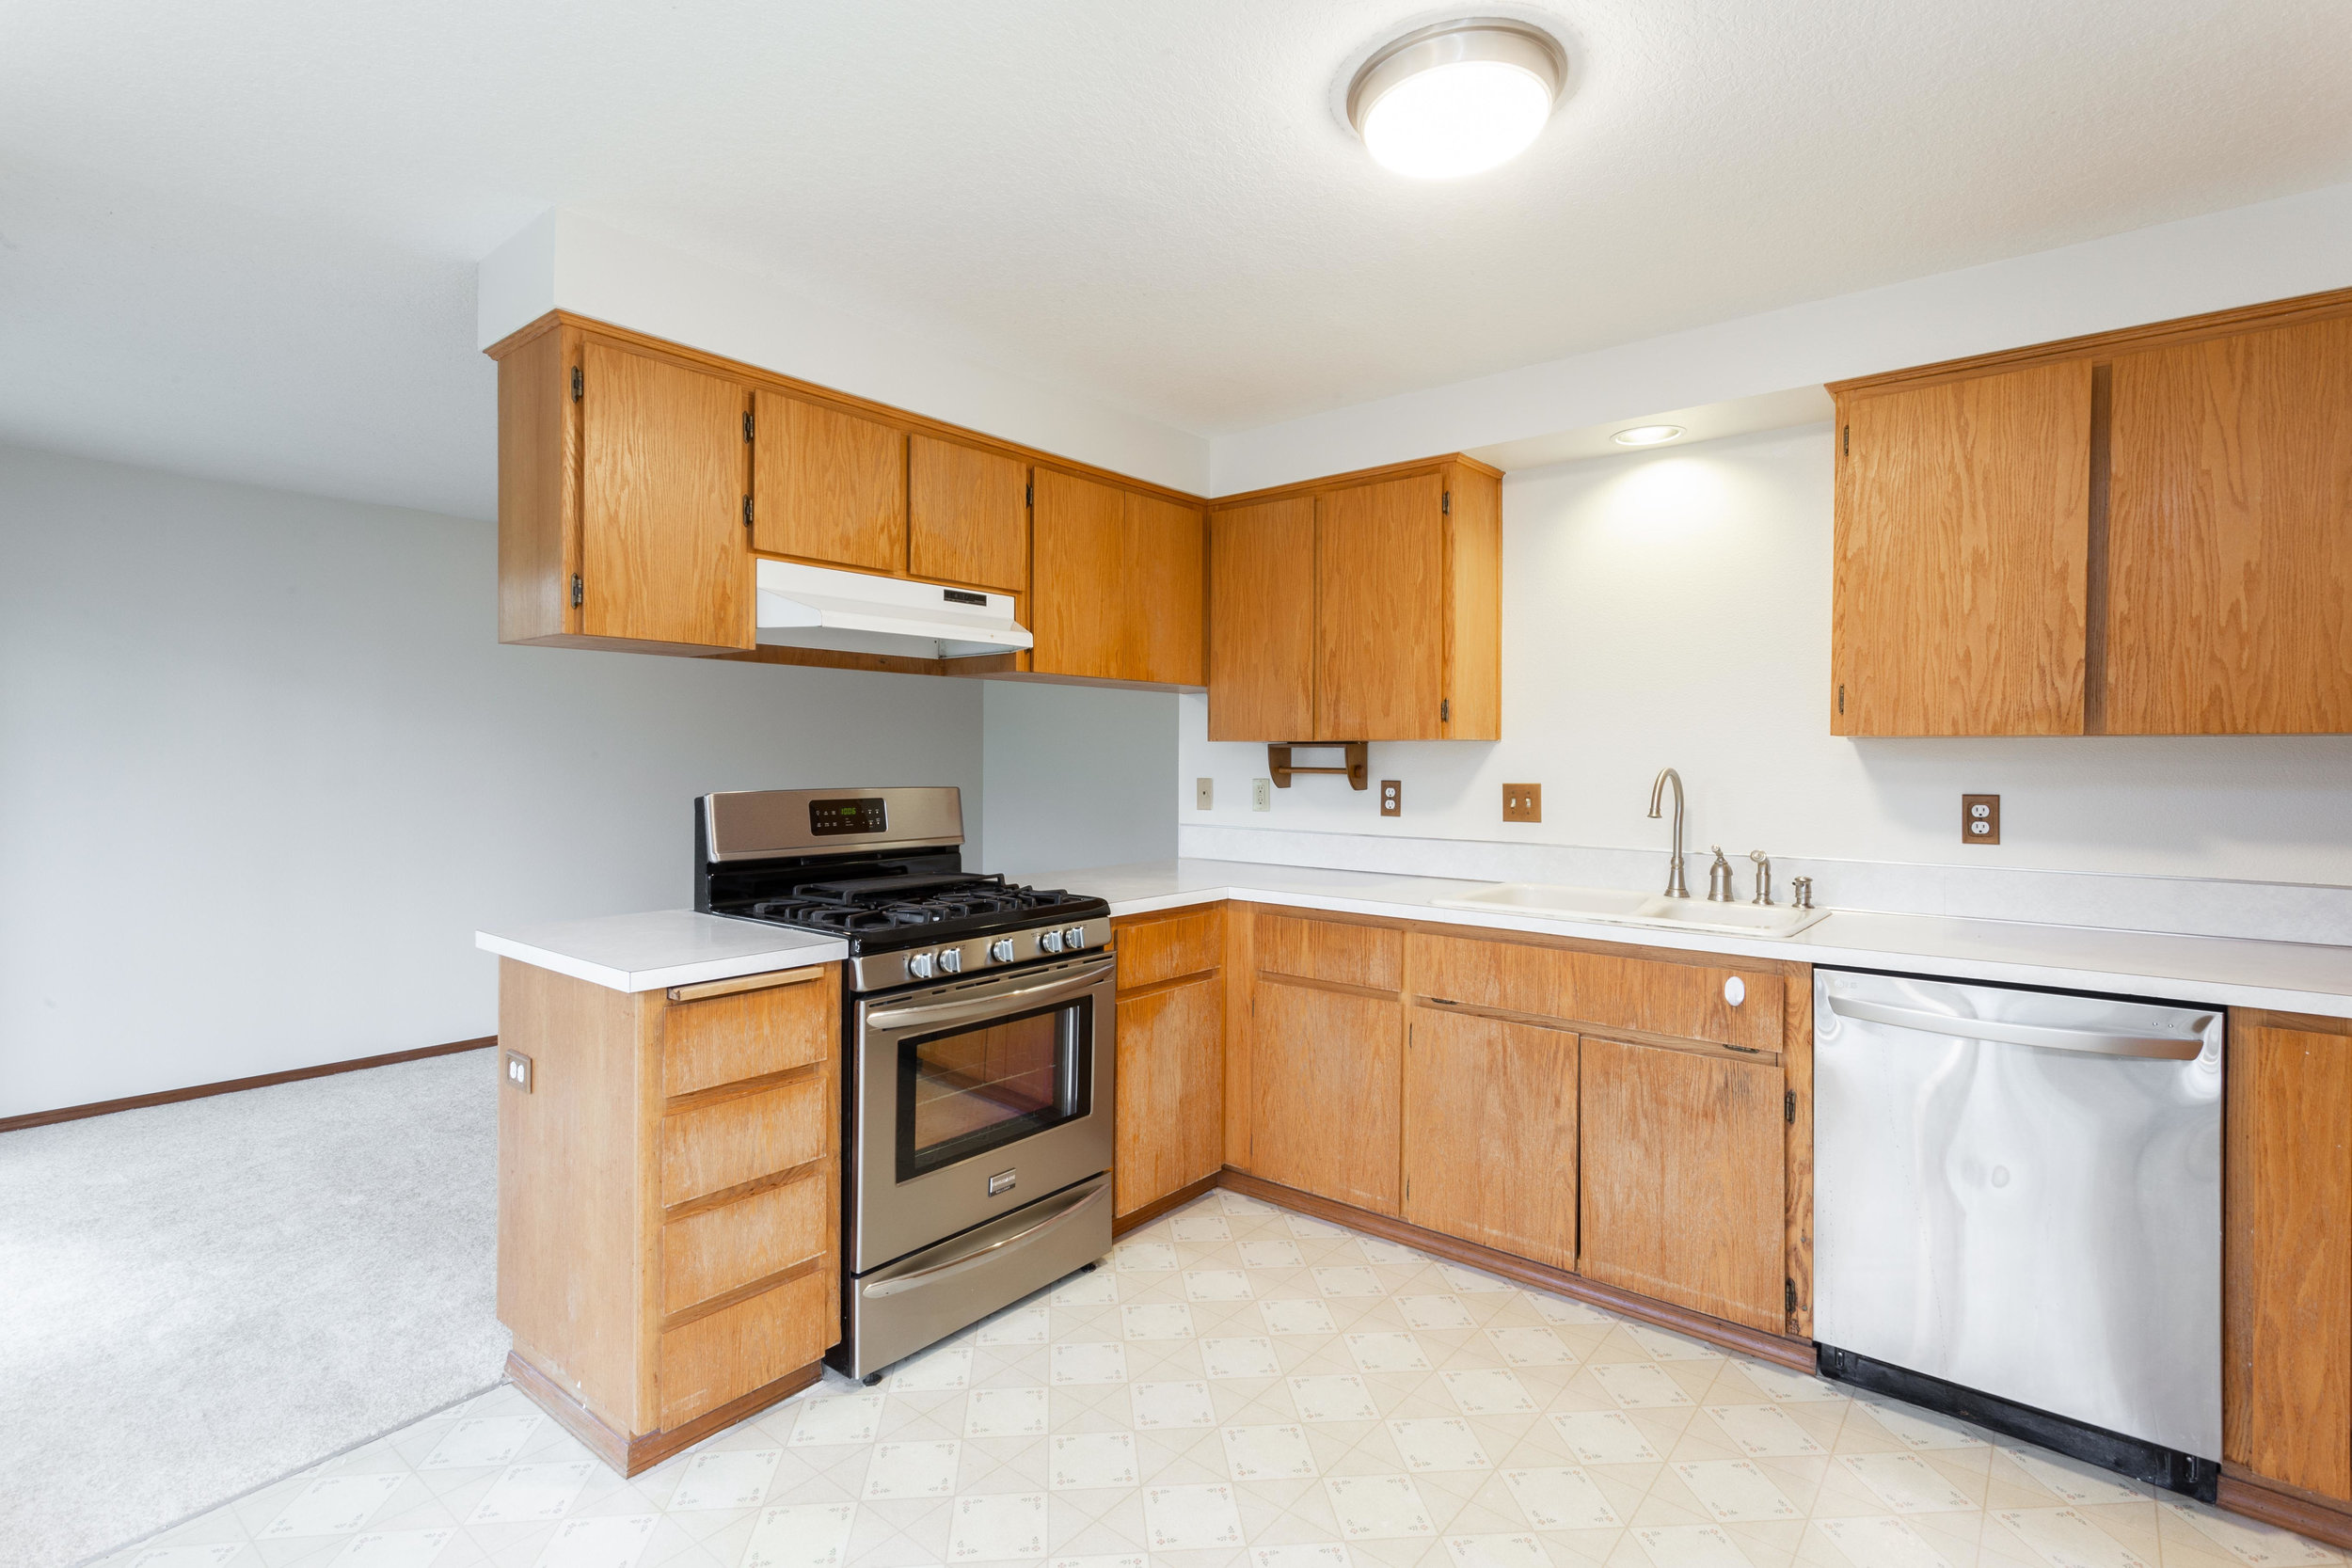 Large kitchen with breakfast nook open to the back family room. New stainless steel dishwasher and gas stove